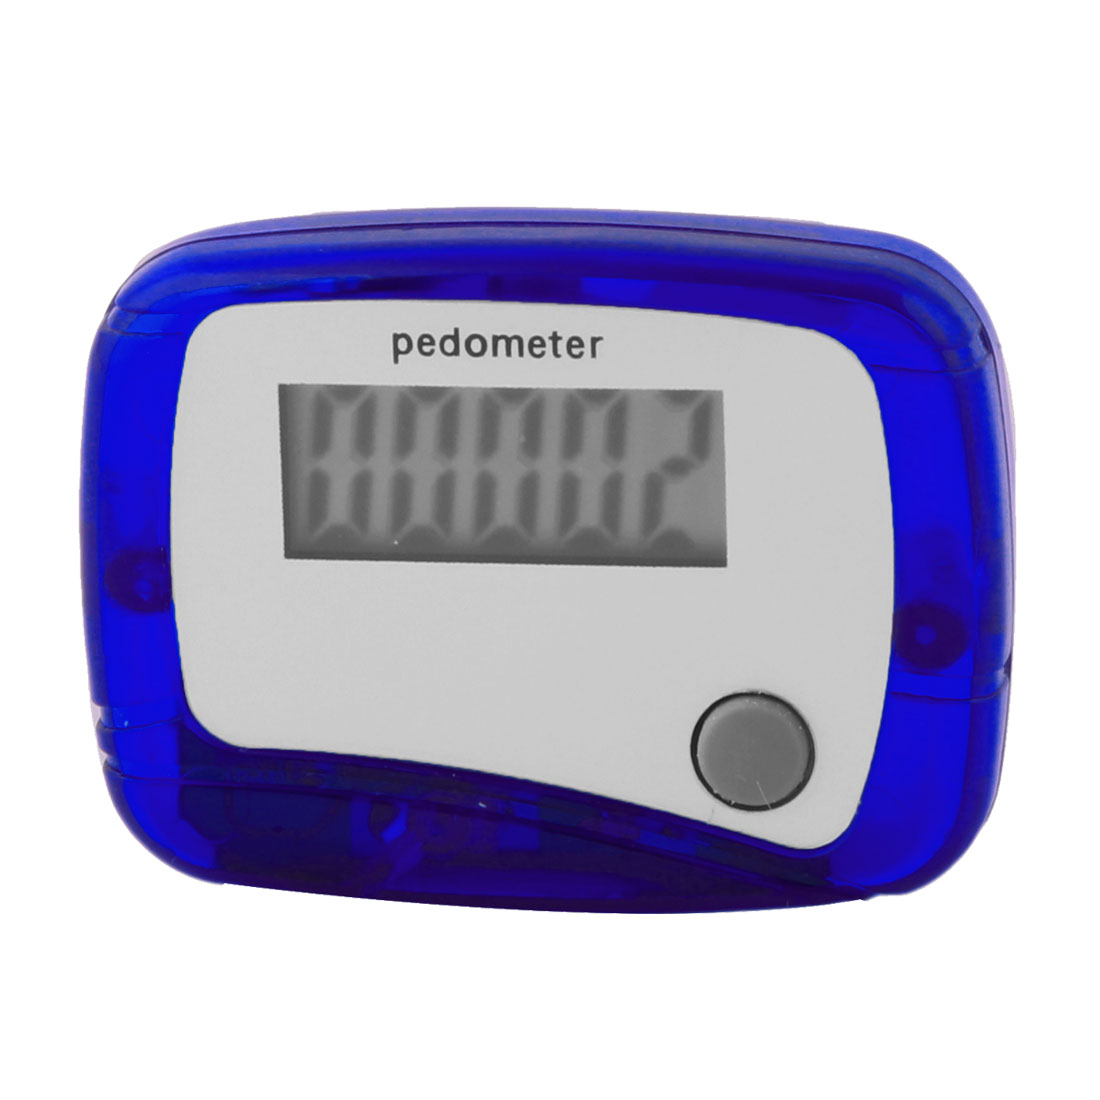 Blue Shell 5 Digits LCD Display Digital Step Counter Pedometer w Clip